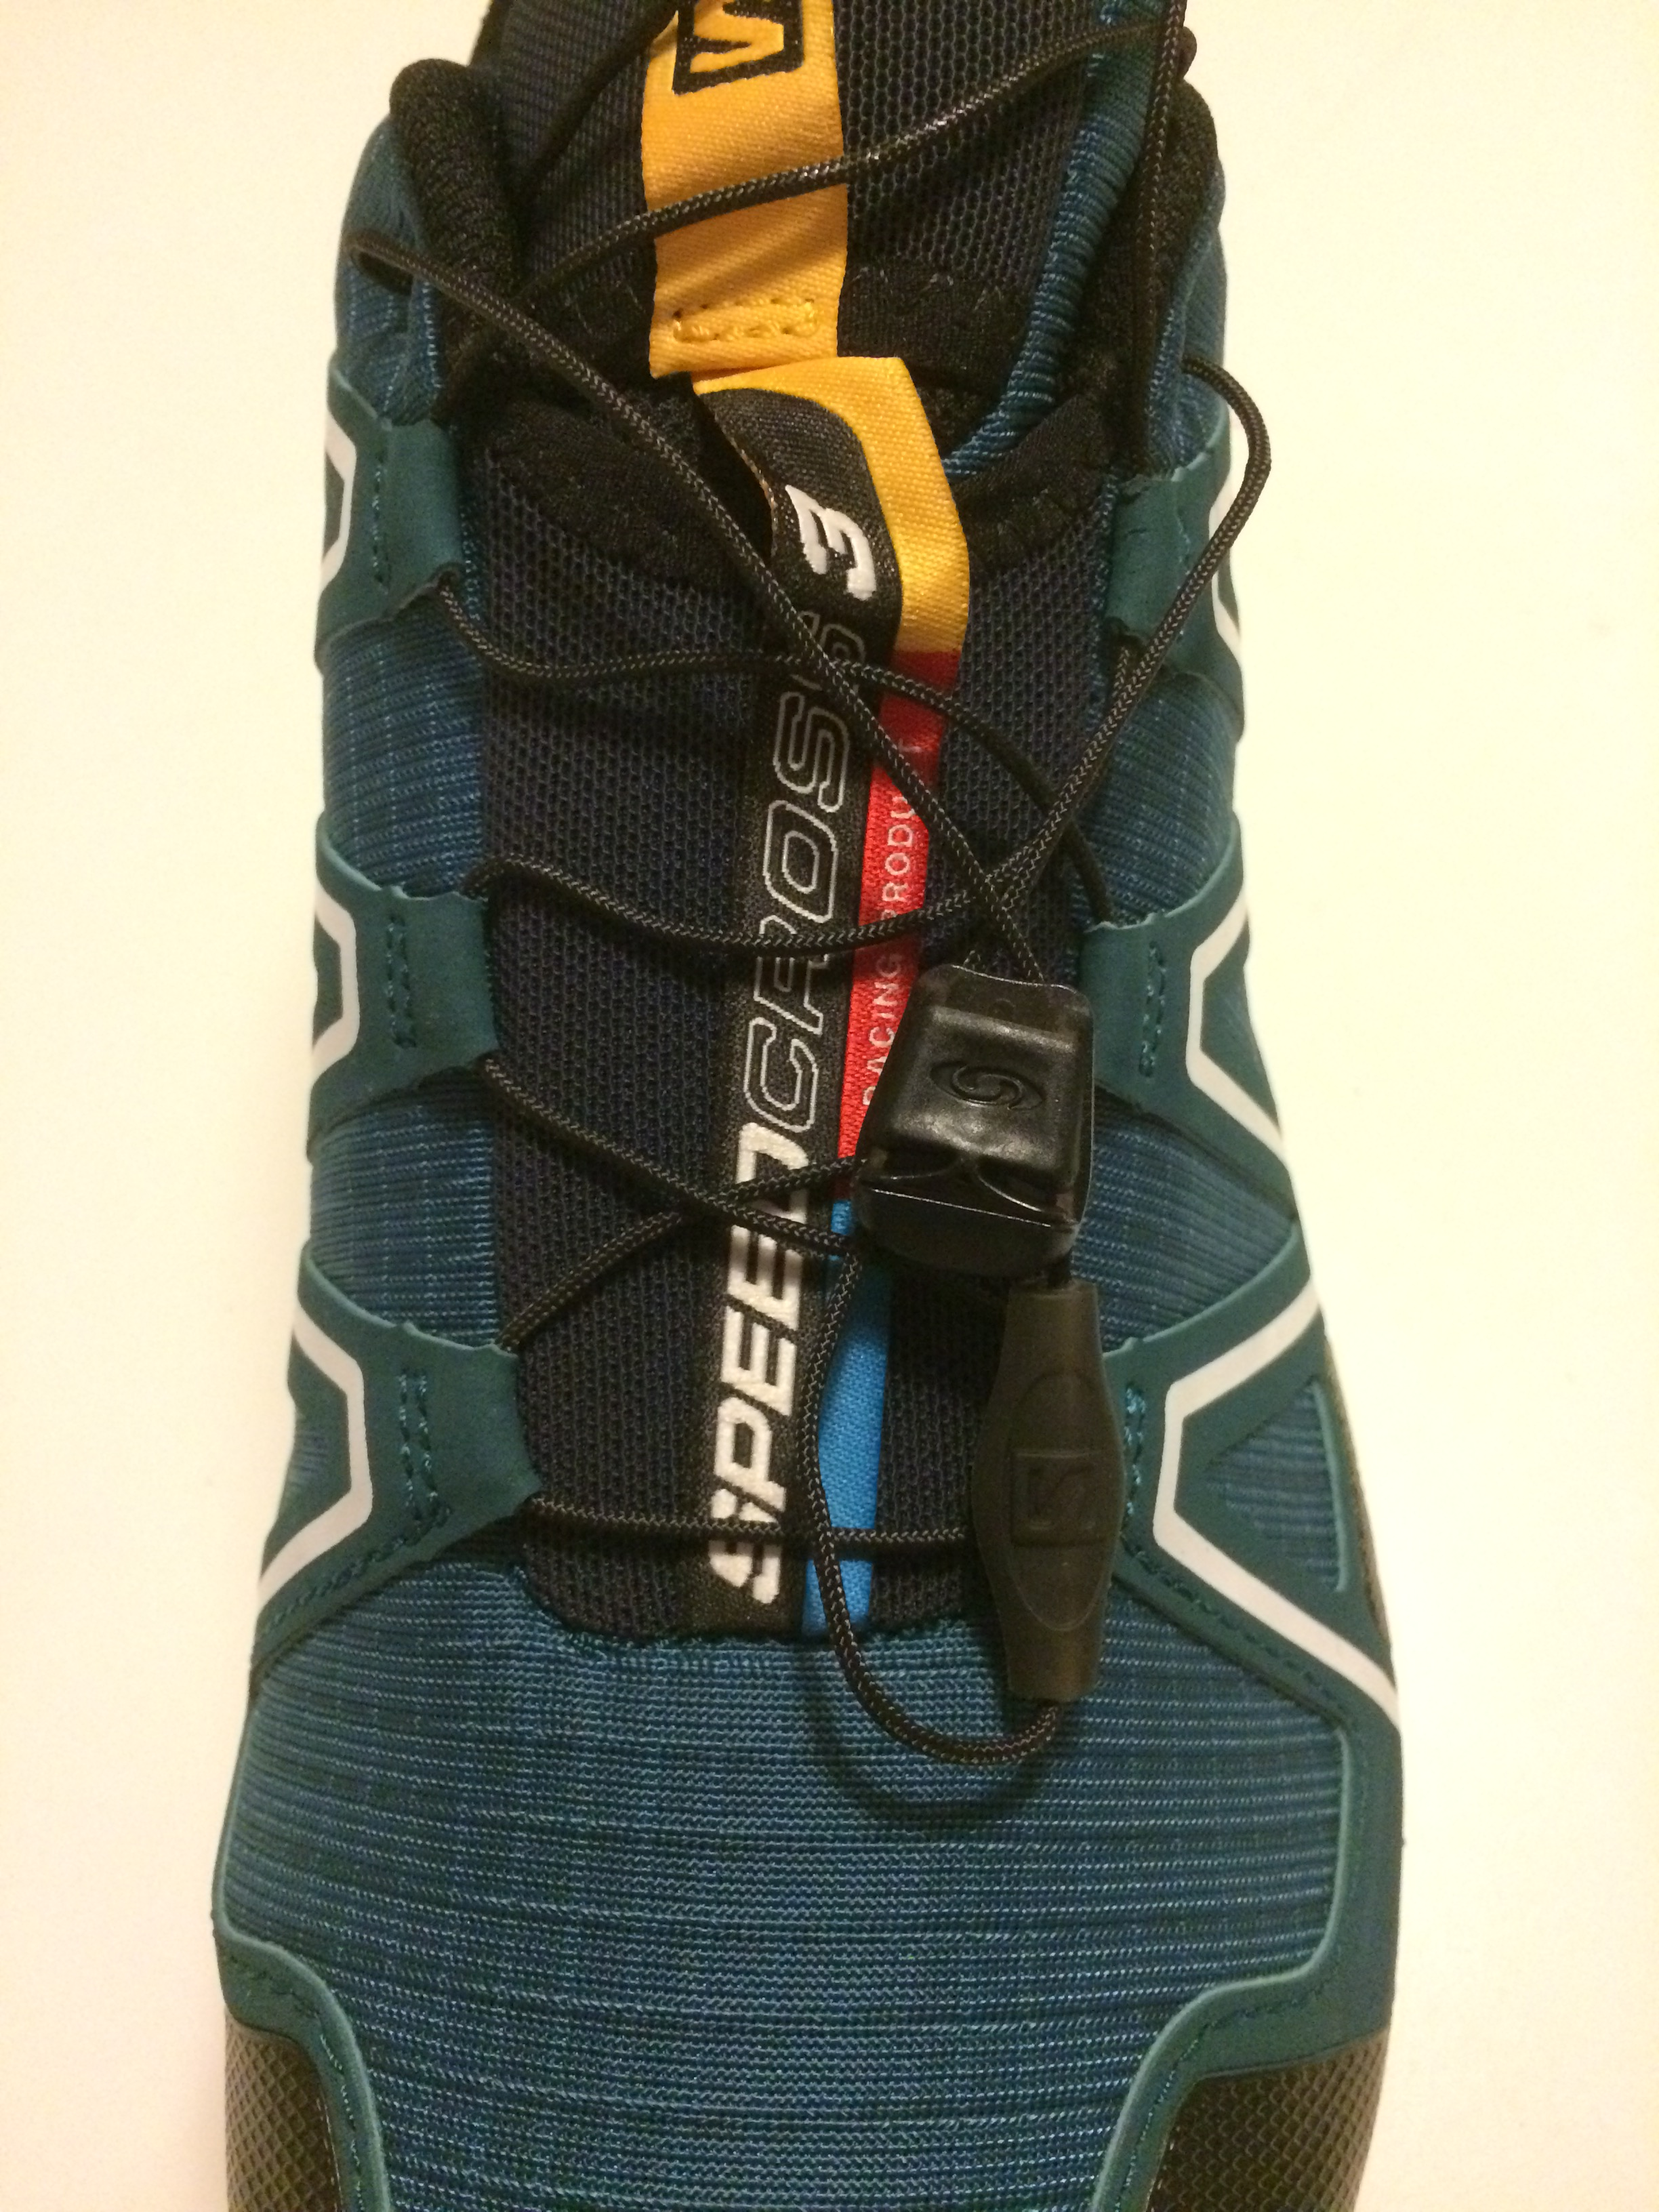 Salomon quick-lace system